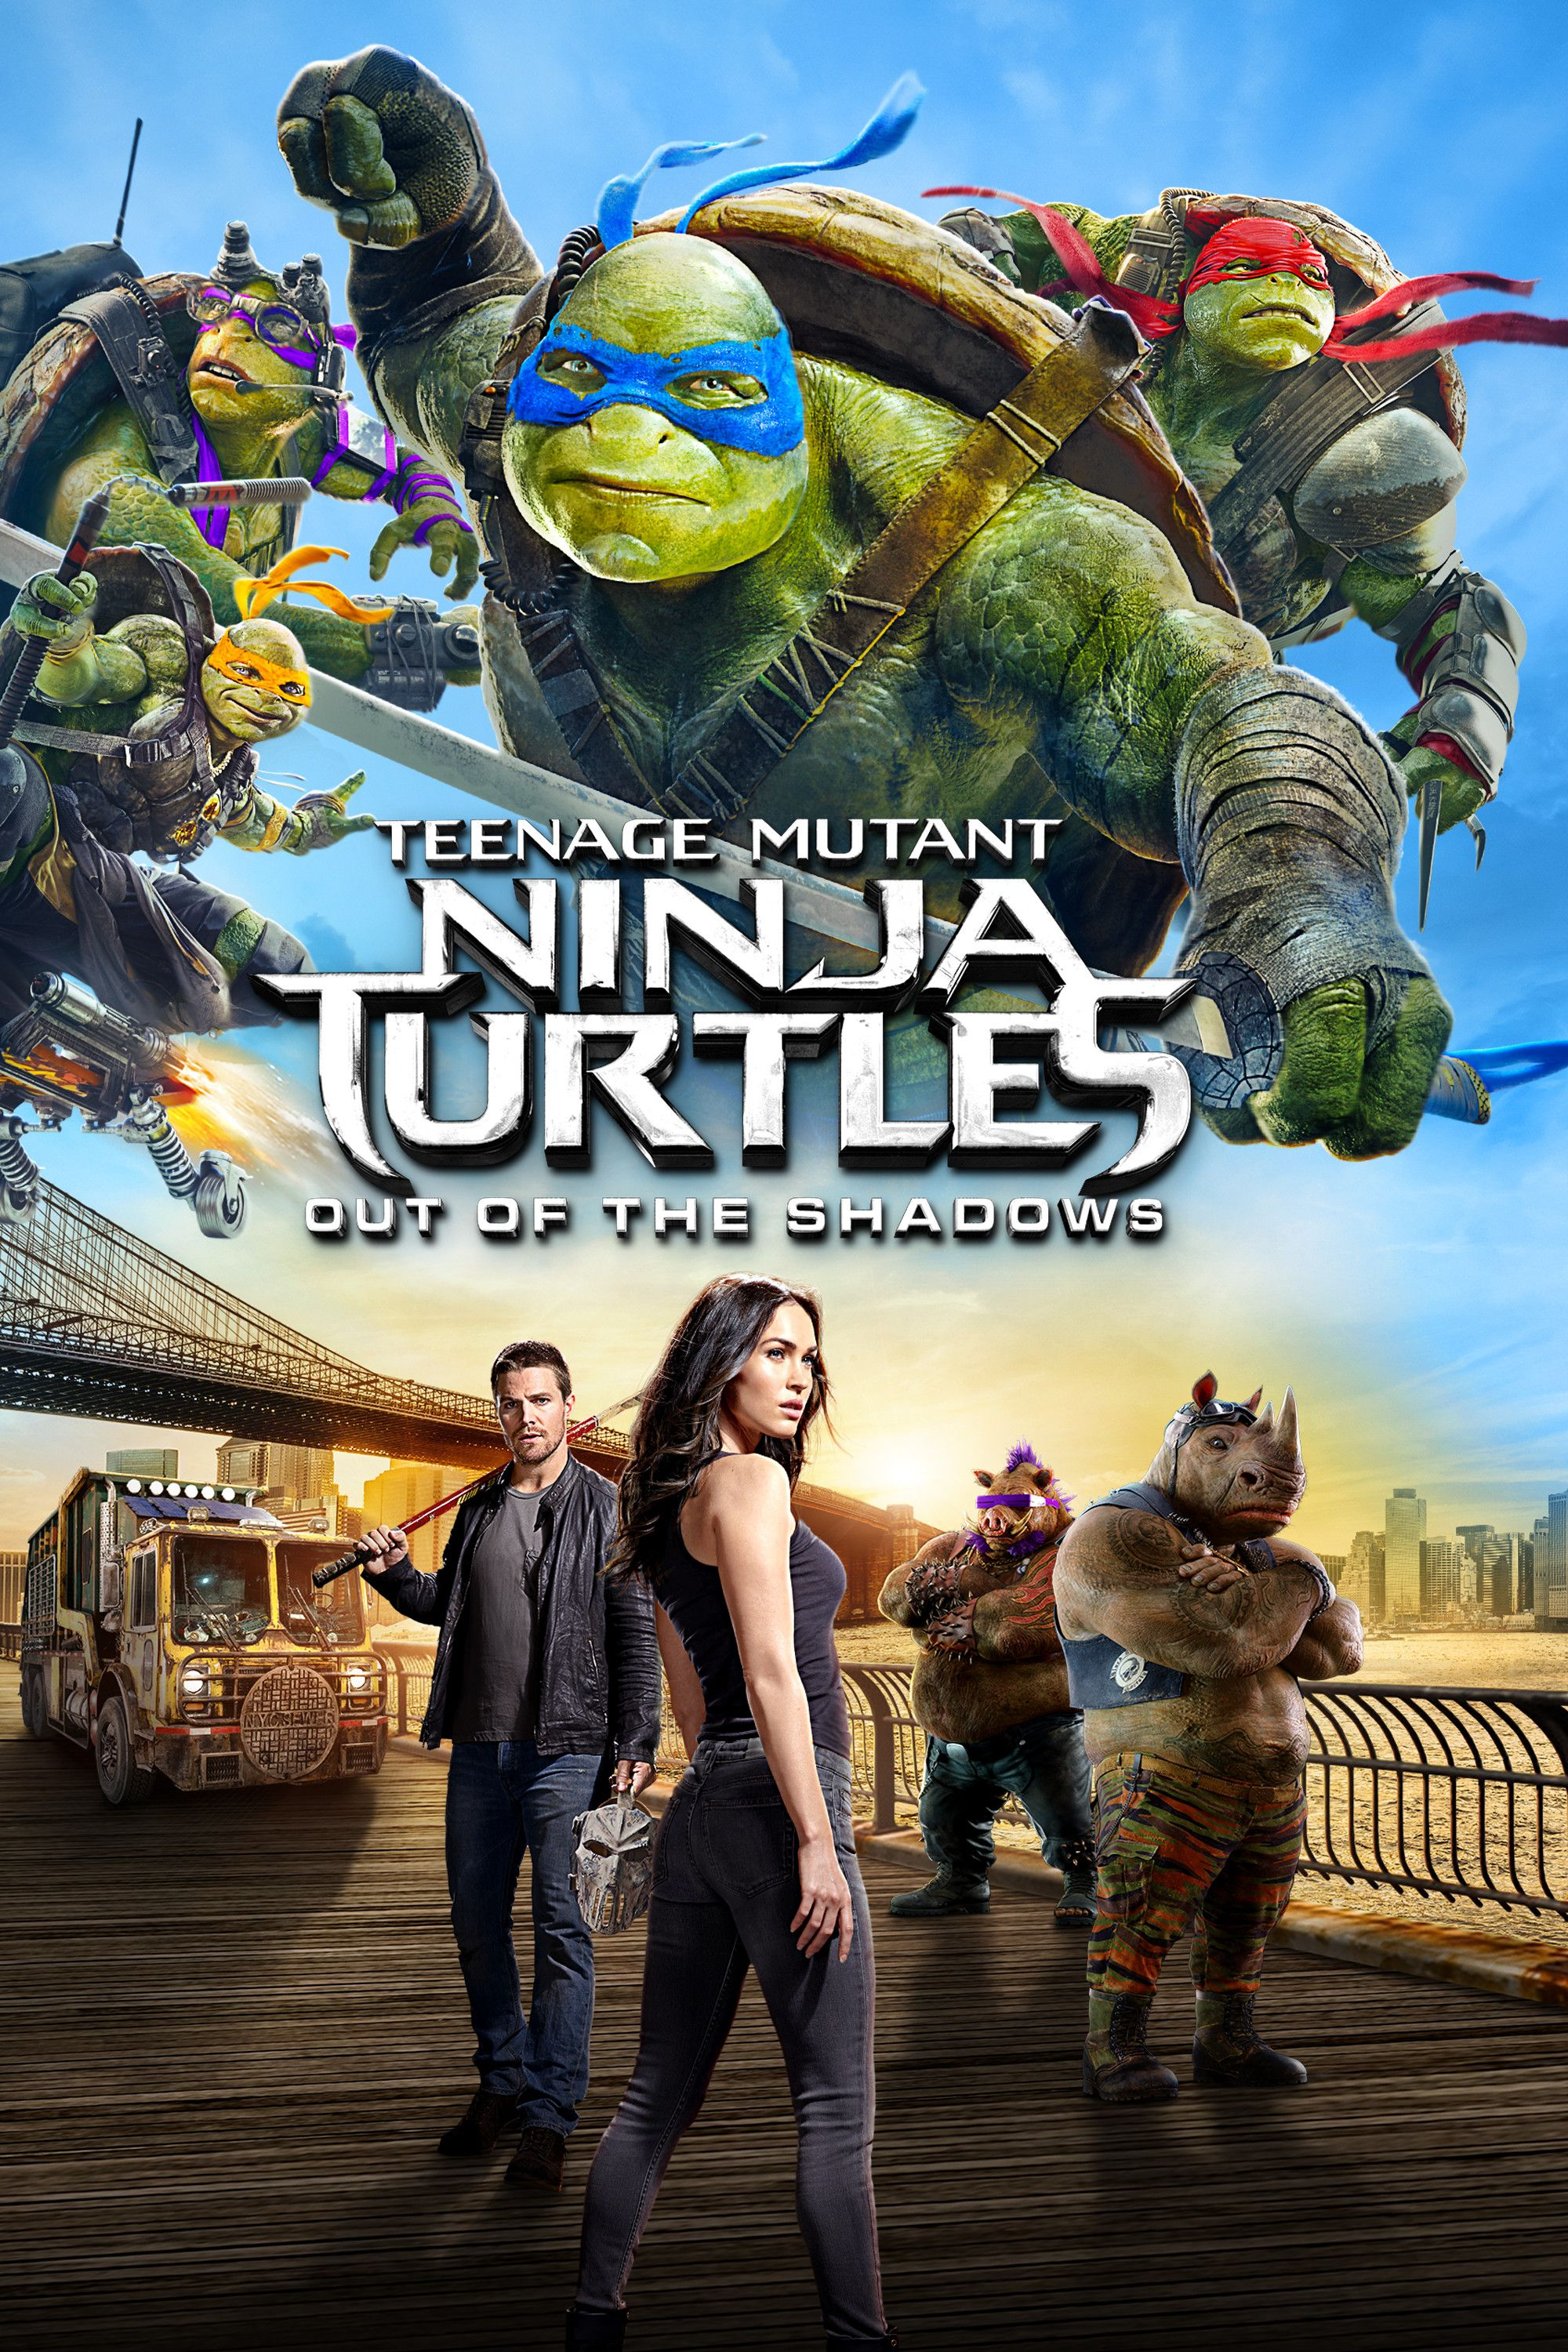 New Hindi Movei 2018 2019 Bolliwood: Teenage Mutant Ninja Turtles: Out Of The Shadows Movie